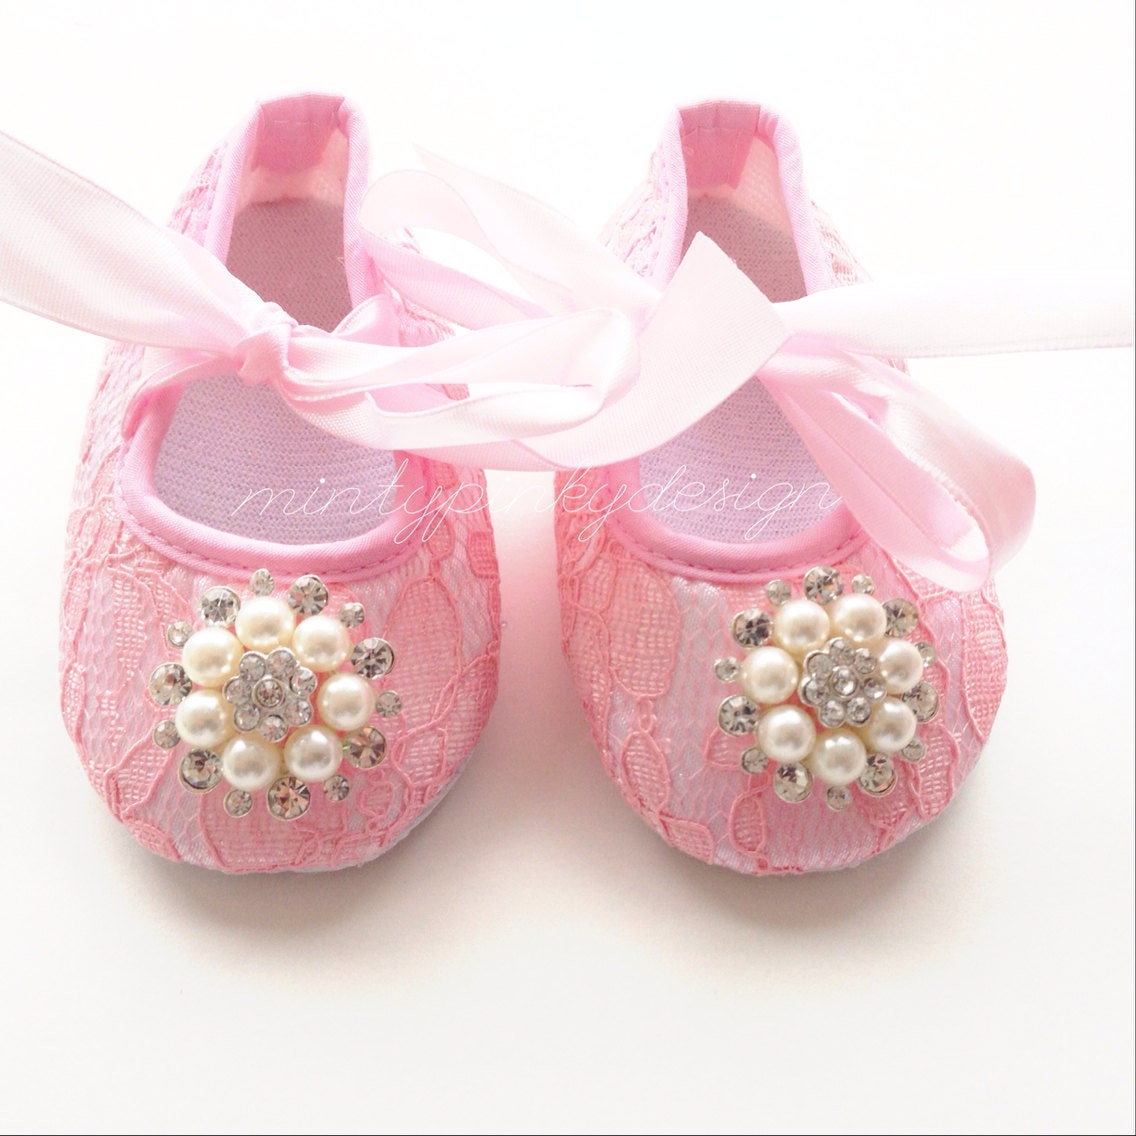 Pink baby shoes baby crib shoes christening baptism shoes